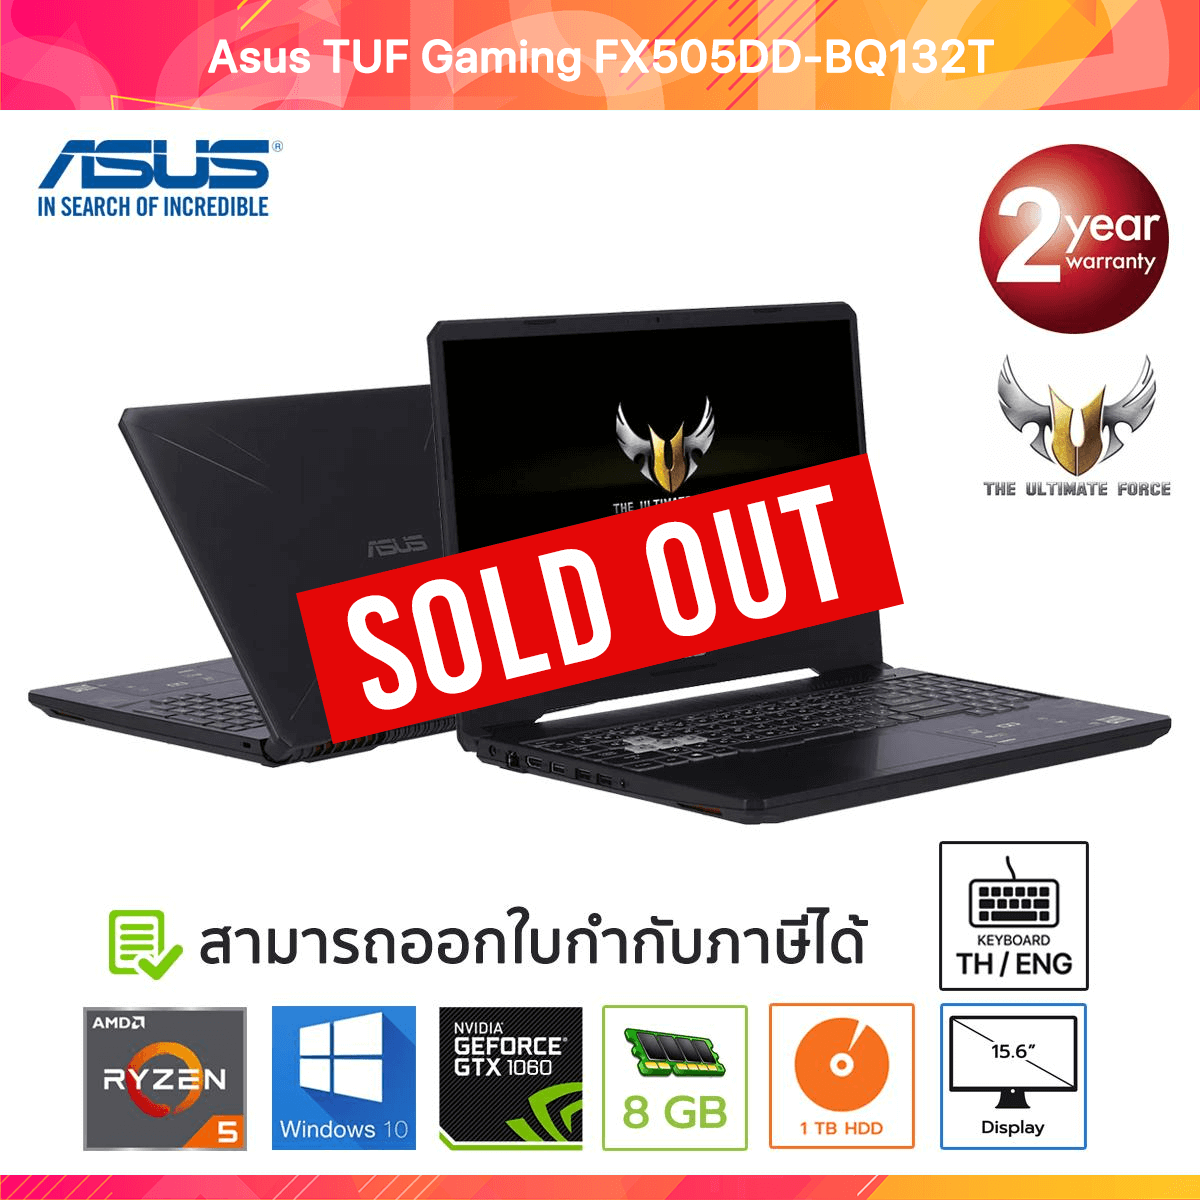 Asus TUF Gaming FX505DD-BQ132T AMD Ryzen 5/8GB/1TB/GTX1050 3GB/15.6/Win10 (Black)